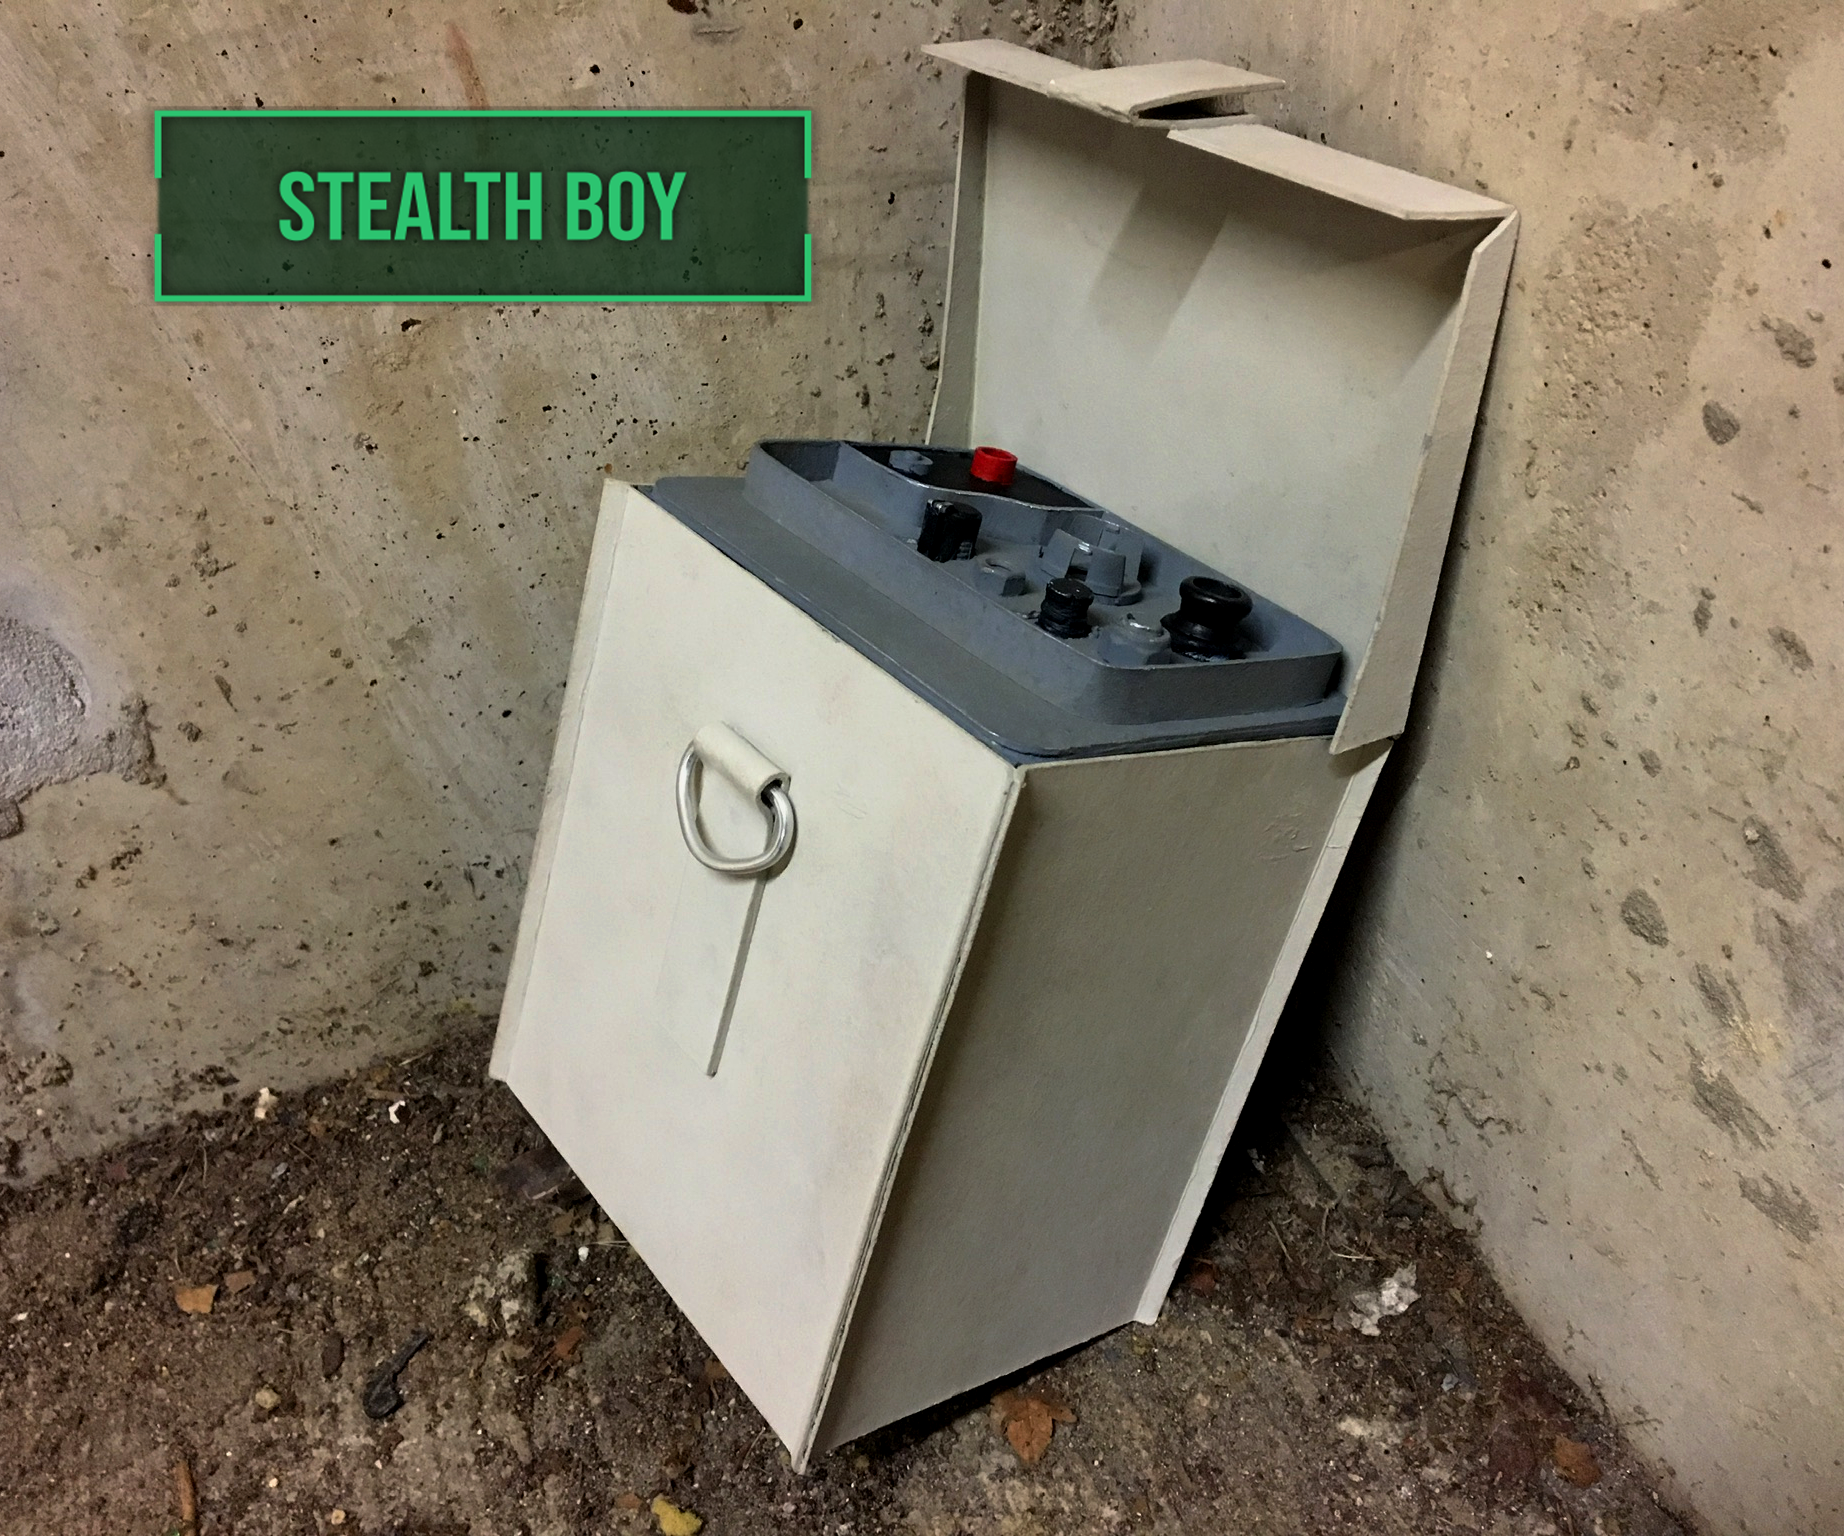 Fallout 4 Stealth Boy [Made of Cardboard]